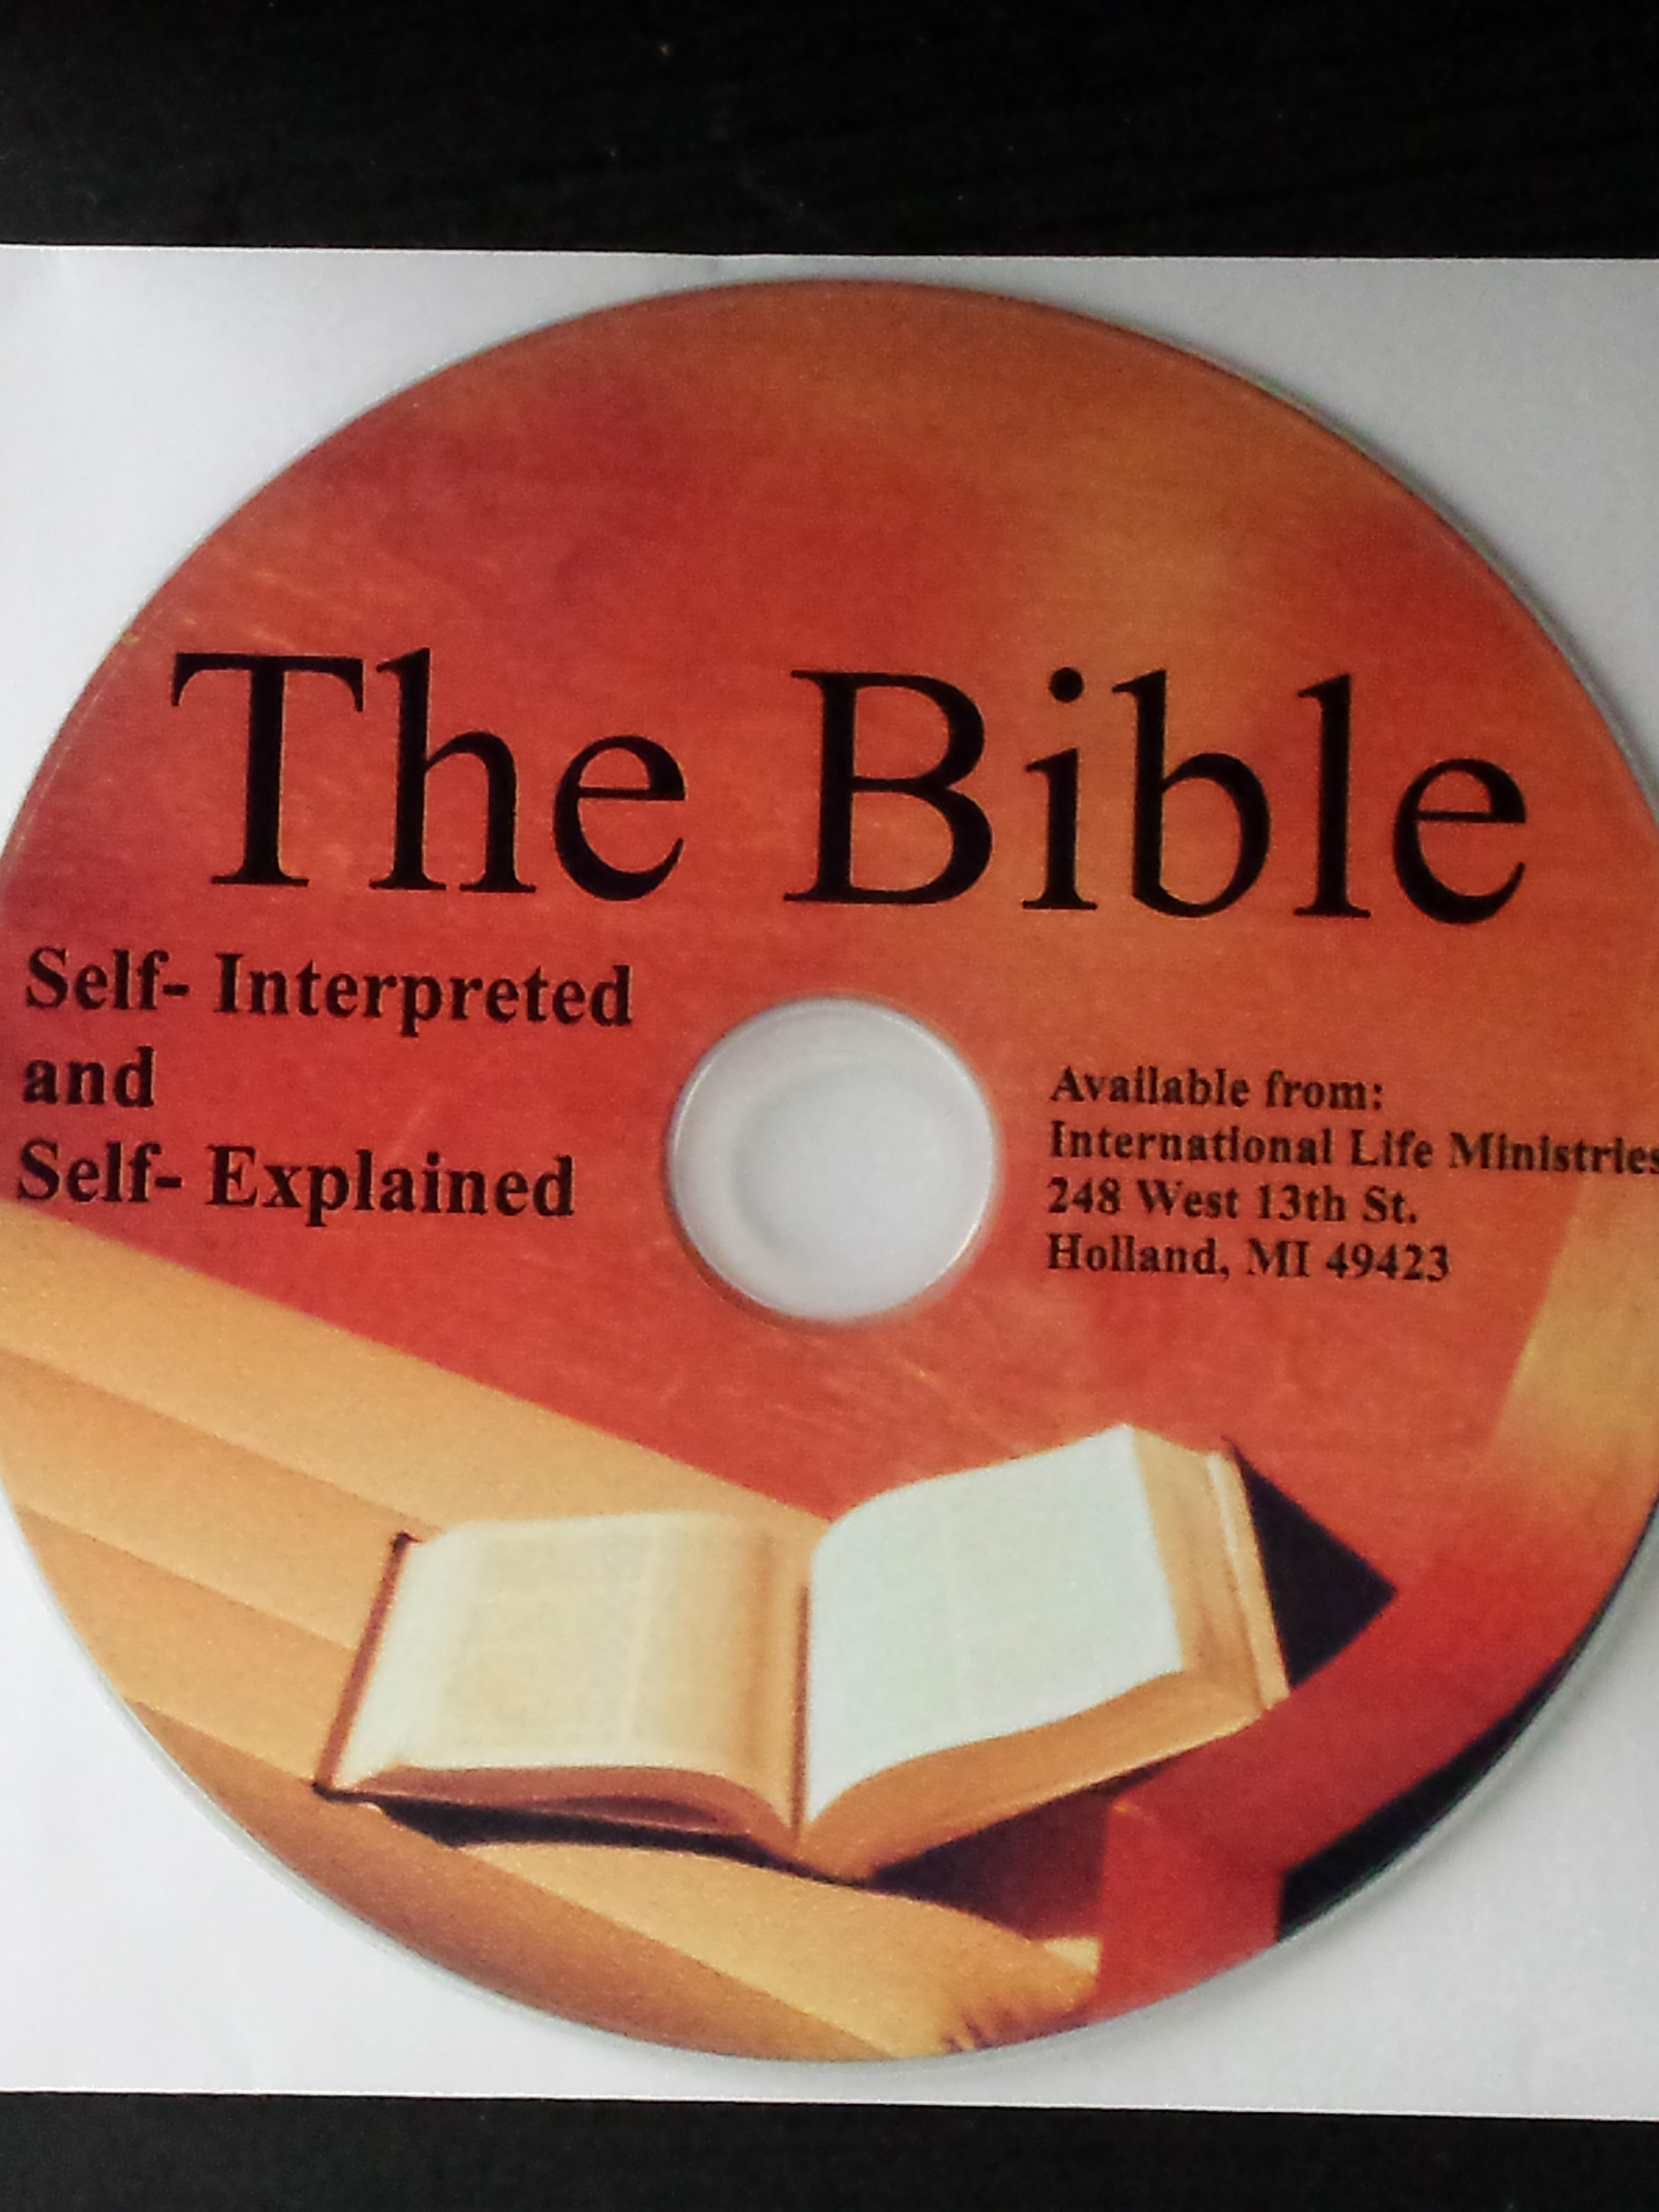 THE CD BIBLE SELF-EXPLAINED